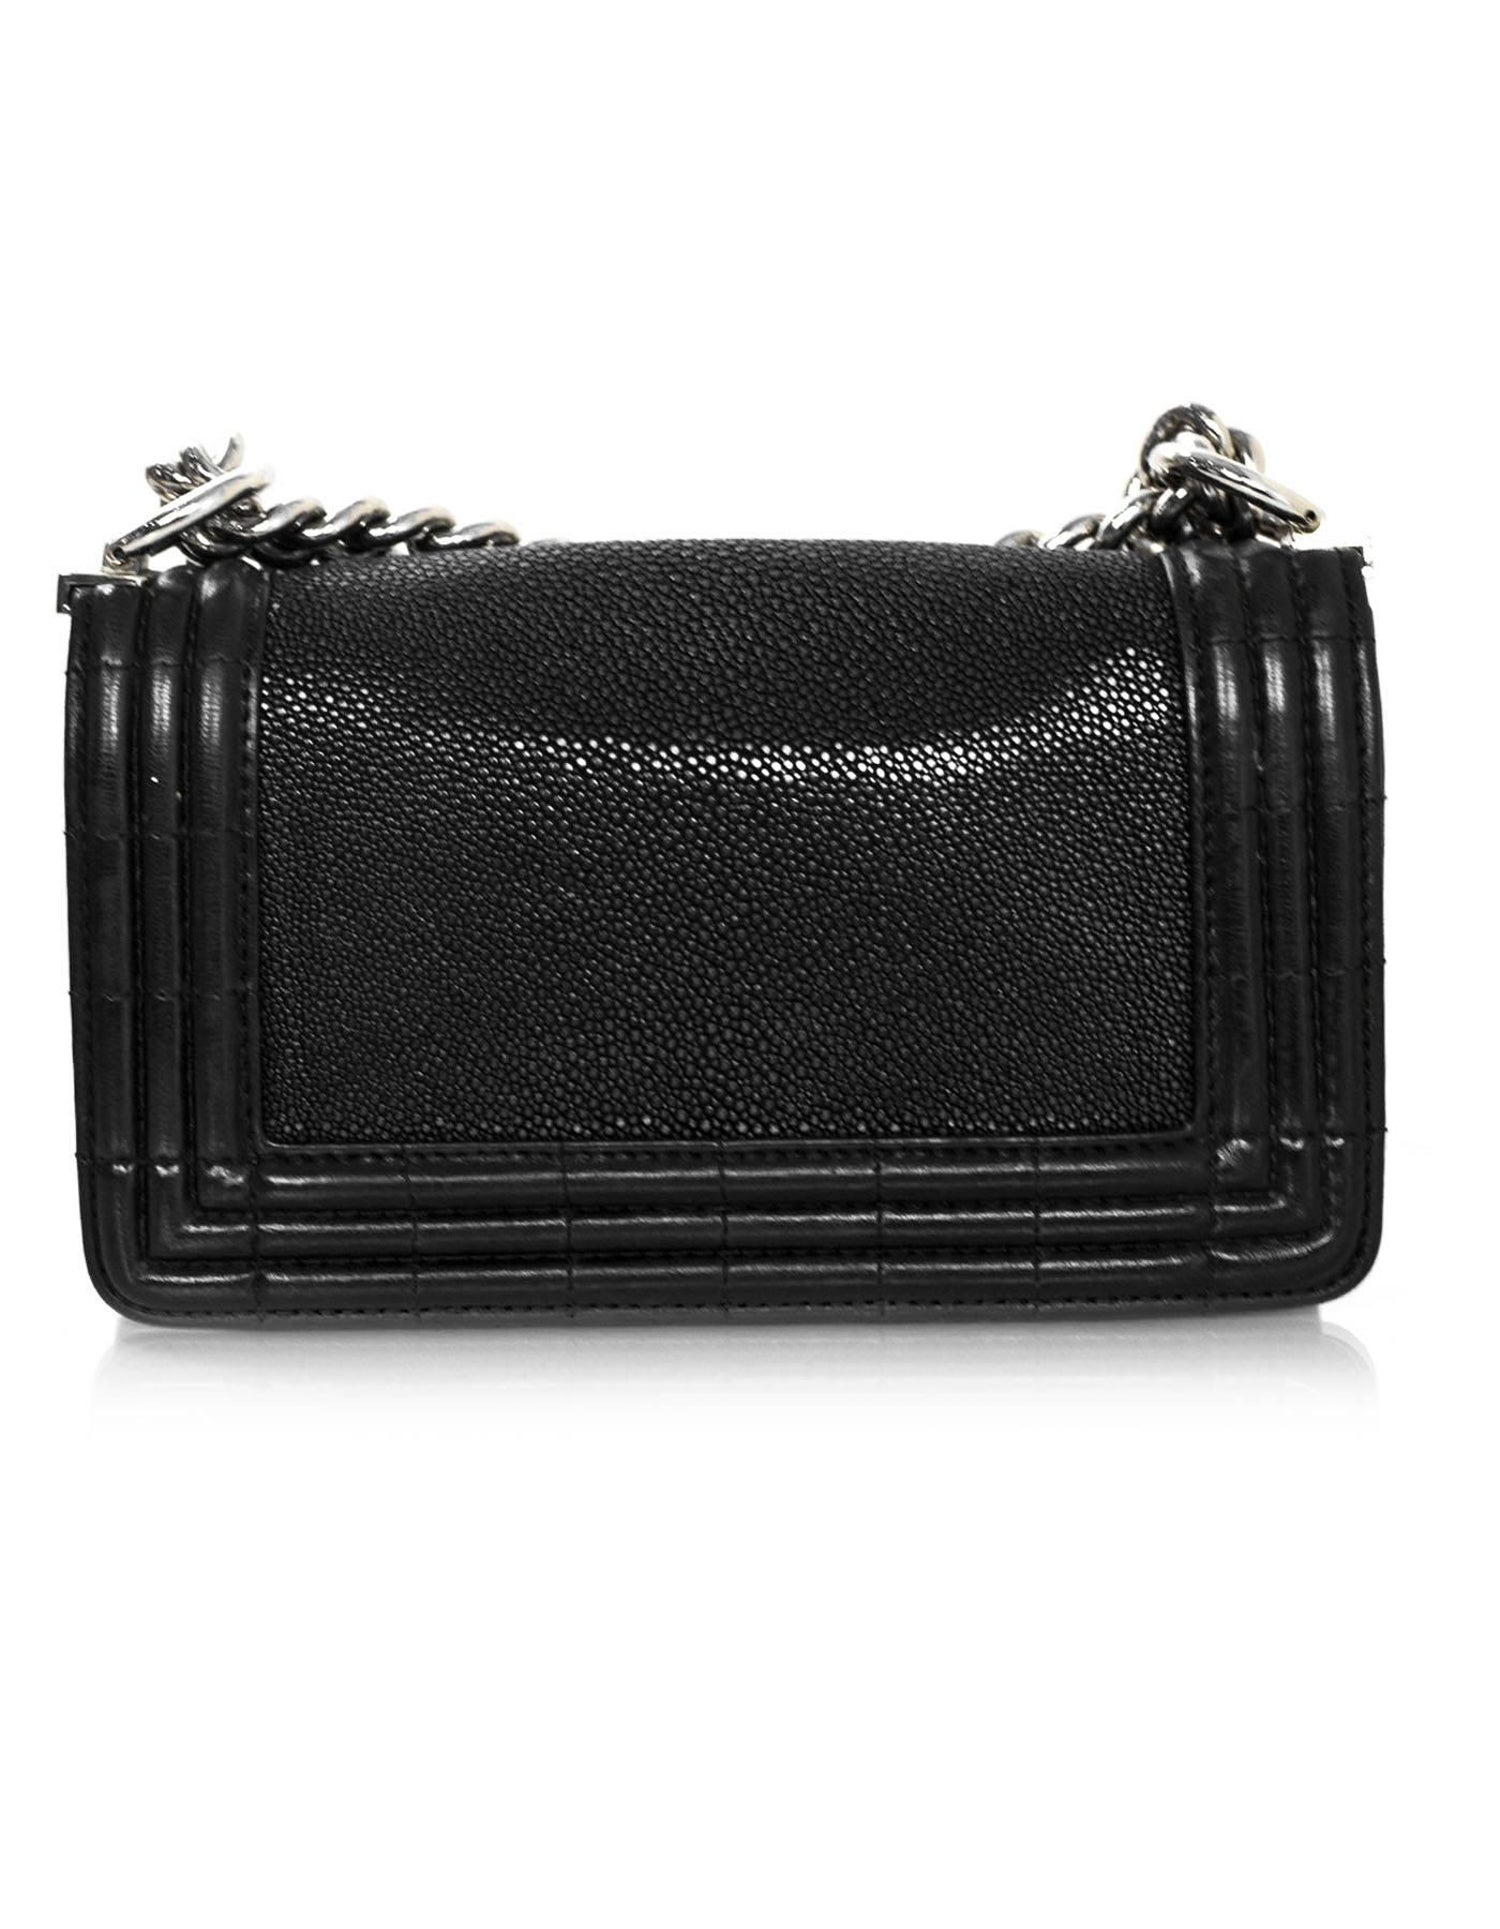 fcc761472c1e Chanel Black Stingray and Leather Small Boy Crossbody Bag For Sale at  1stdibs